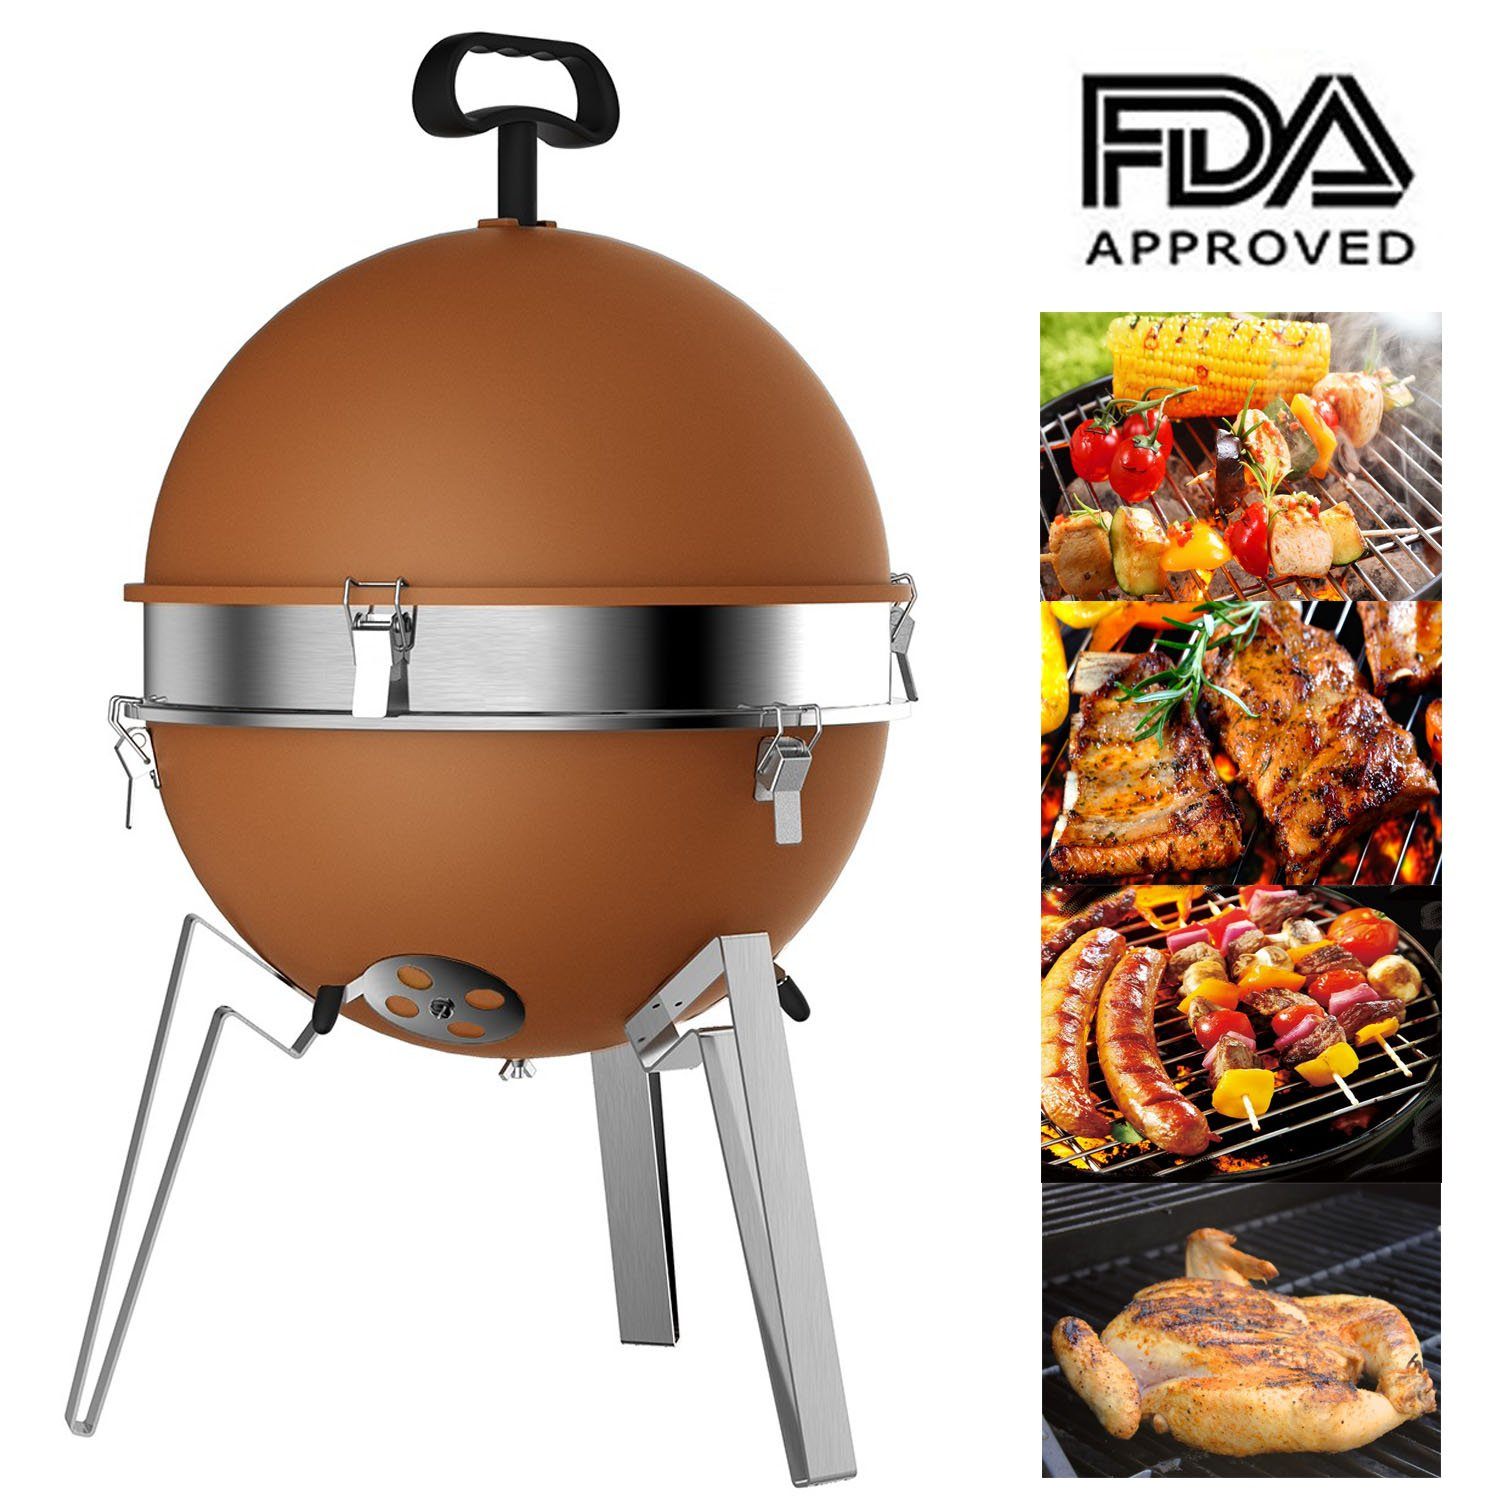 Mangotree Charcoal Grill Portable BBQ 12.40in Removable Barbecue Lightweight Barbecue with Stainless Steel Grate for Patio Garden Lawn Party Beach Camping Backyard Cooking Outdoor Barbecue Tool Brown